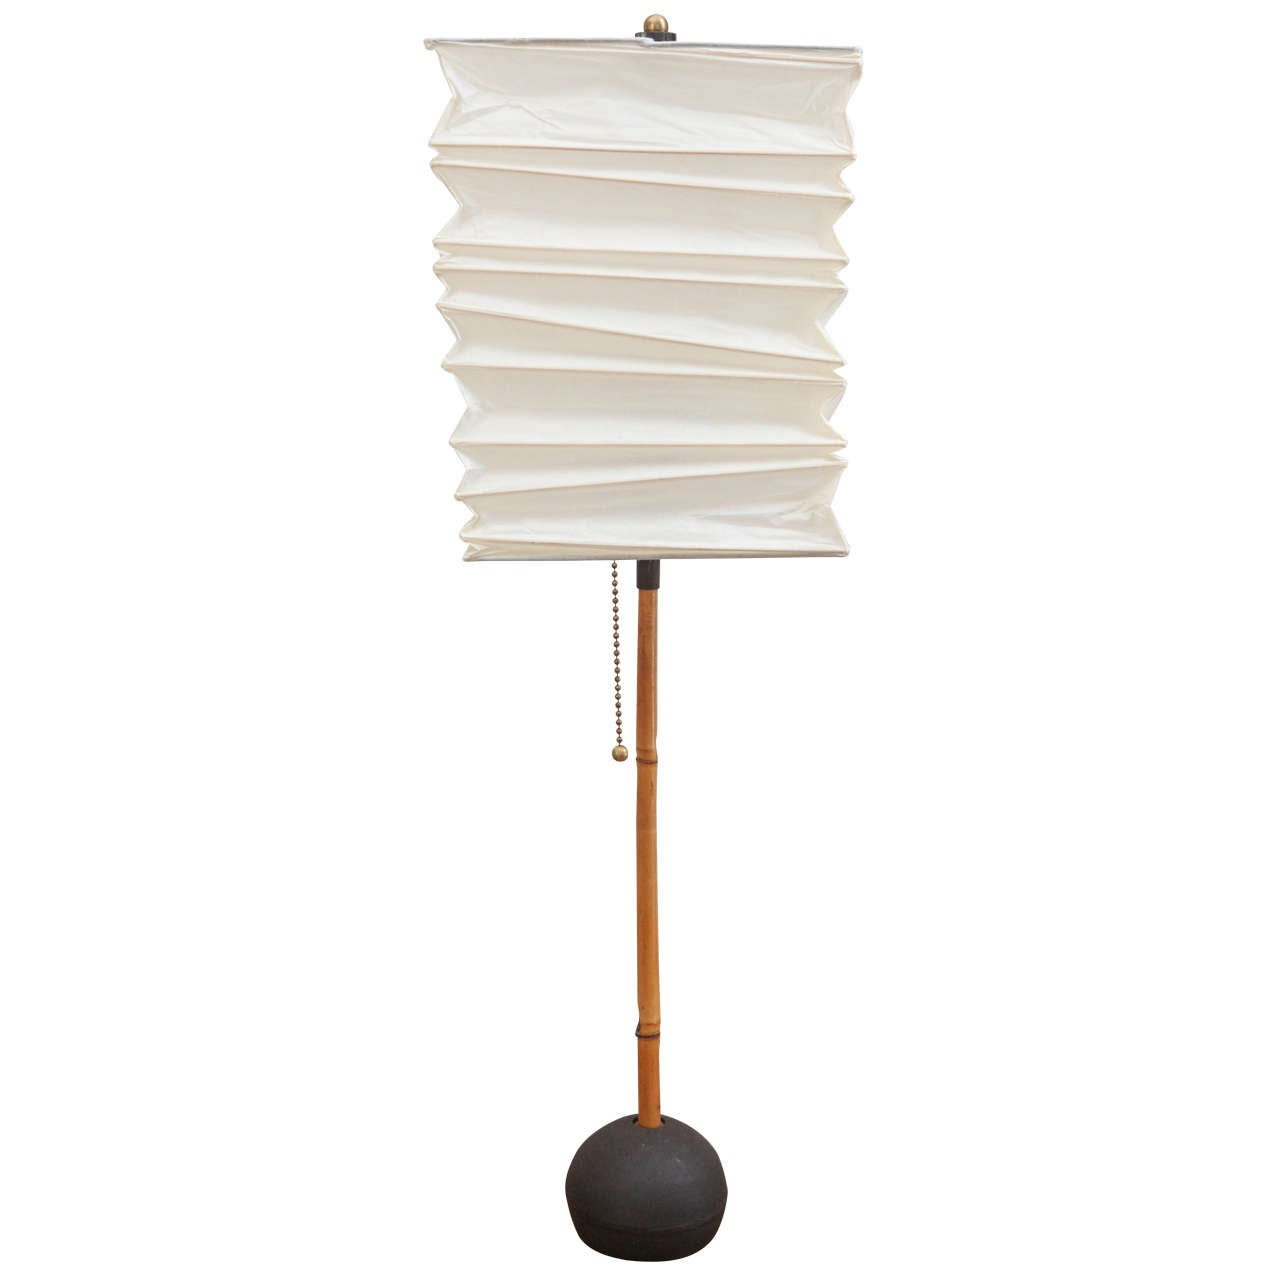 Vintage Isamu Noguchi Table Lamp at 1stdibs